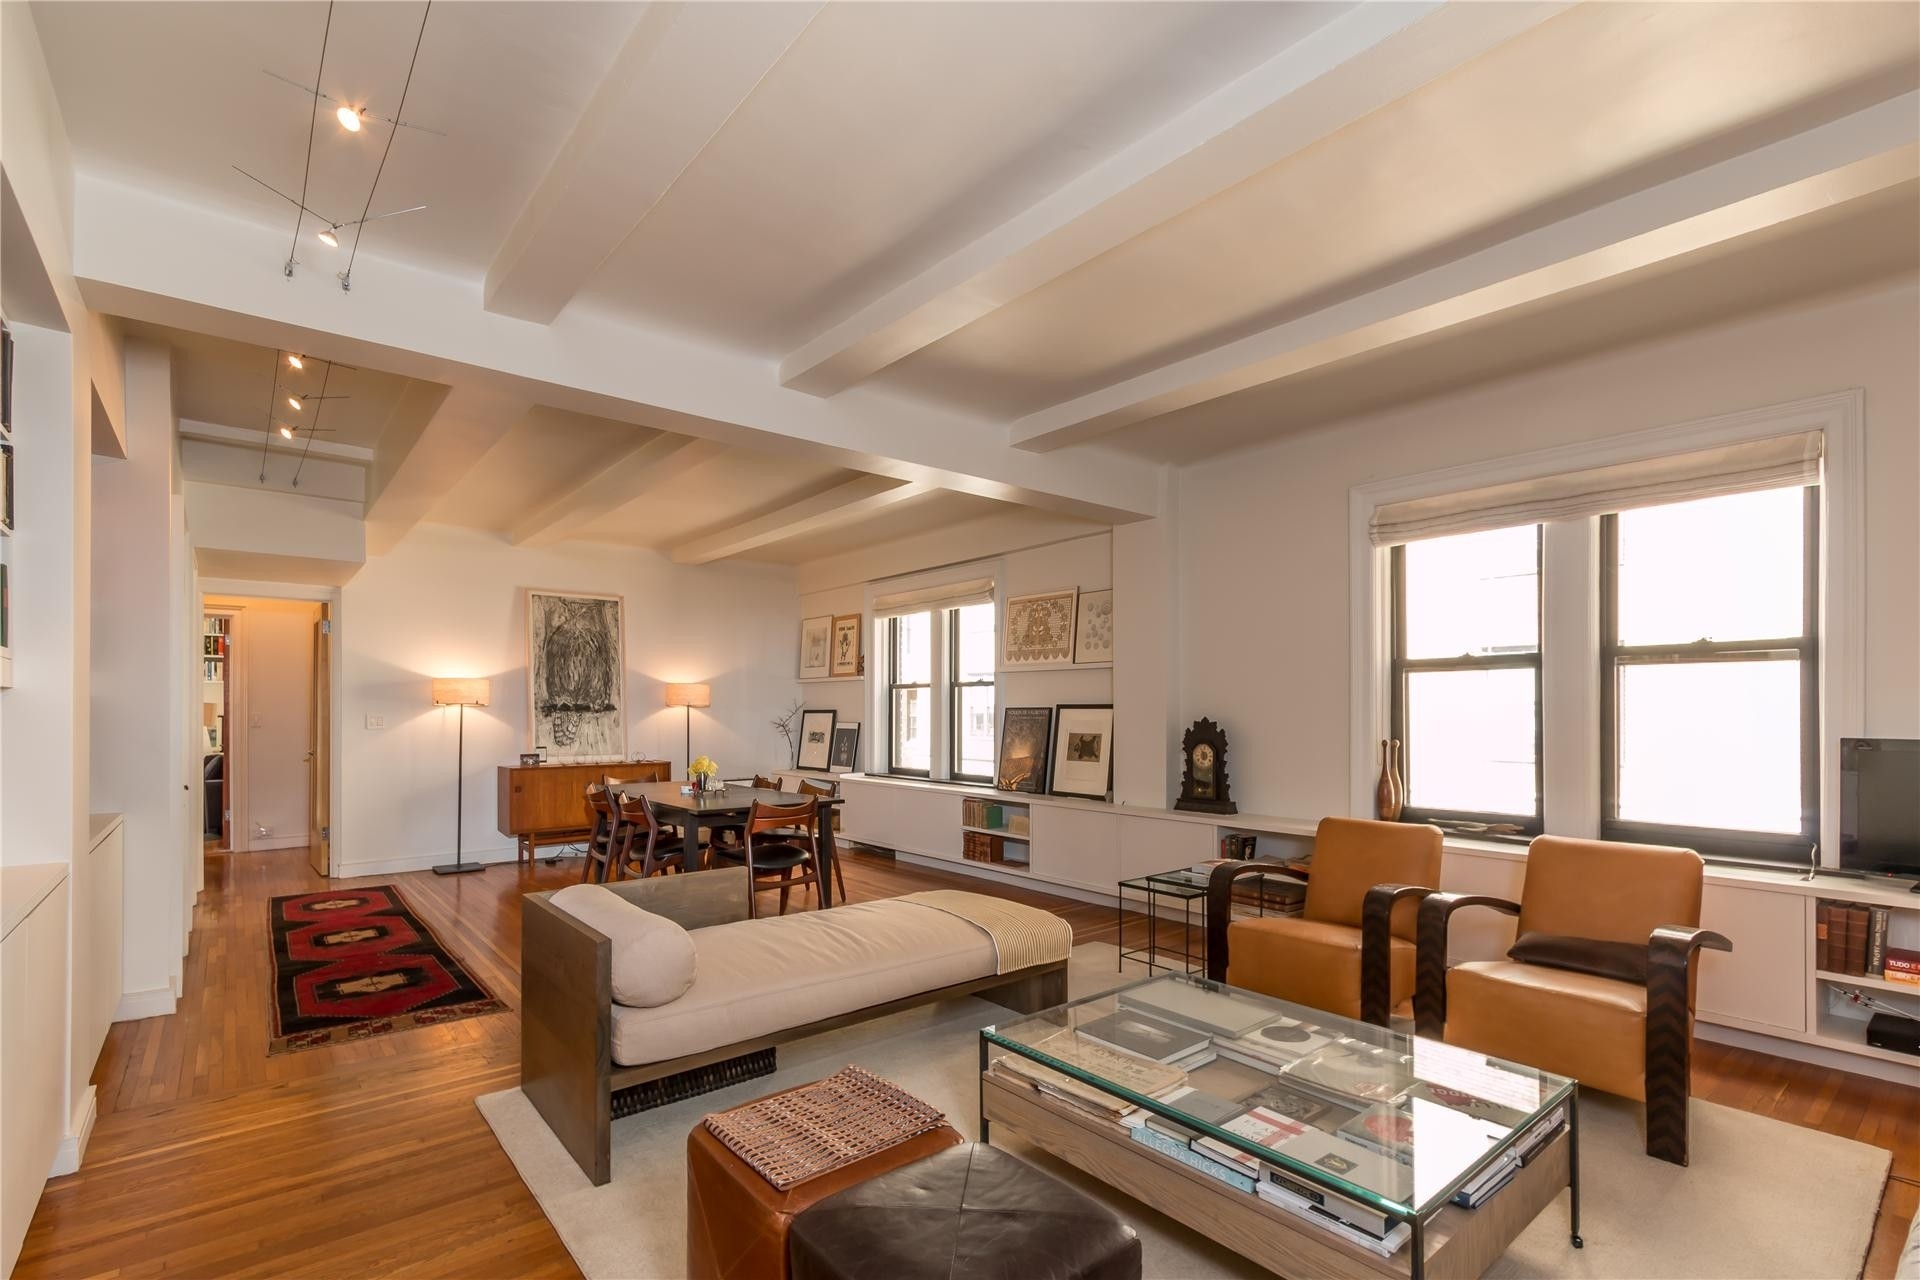 Property at 17 West 71st St, 9C Lincoln Square, New York